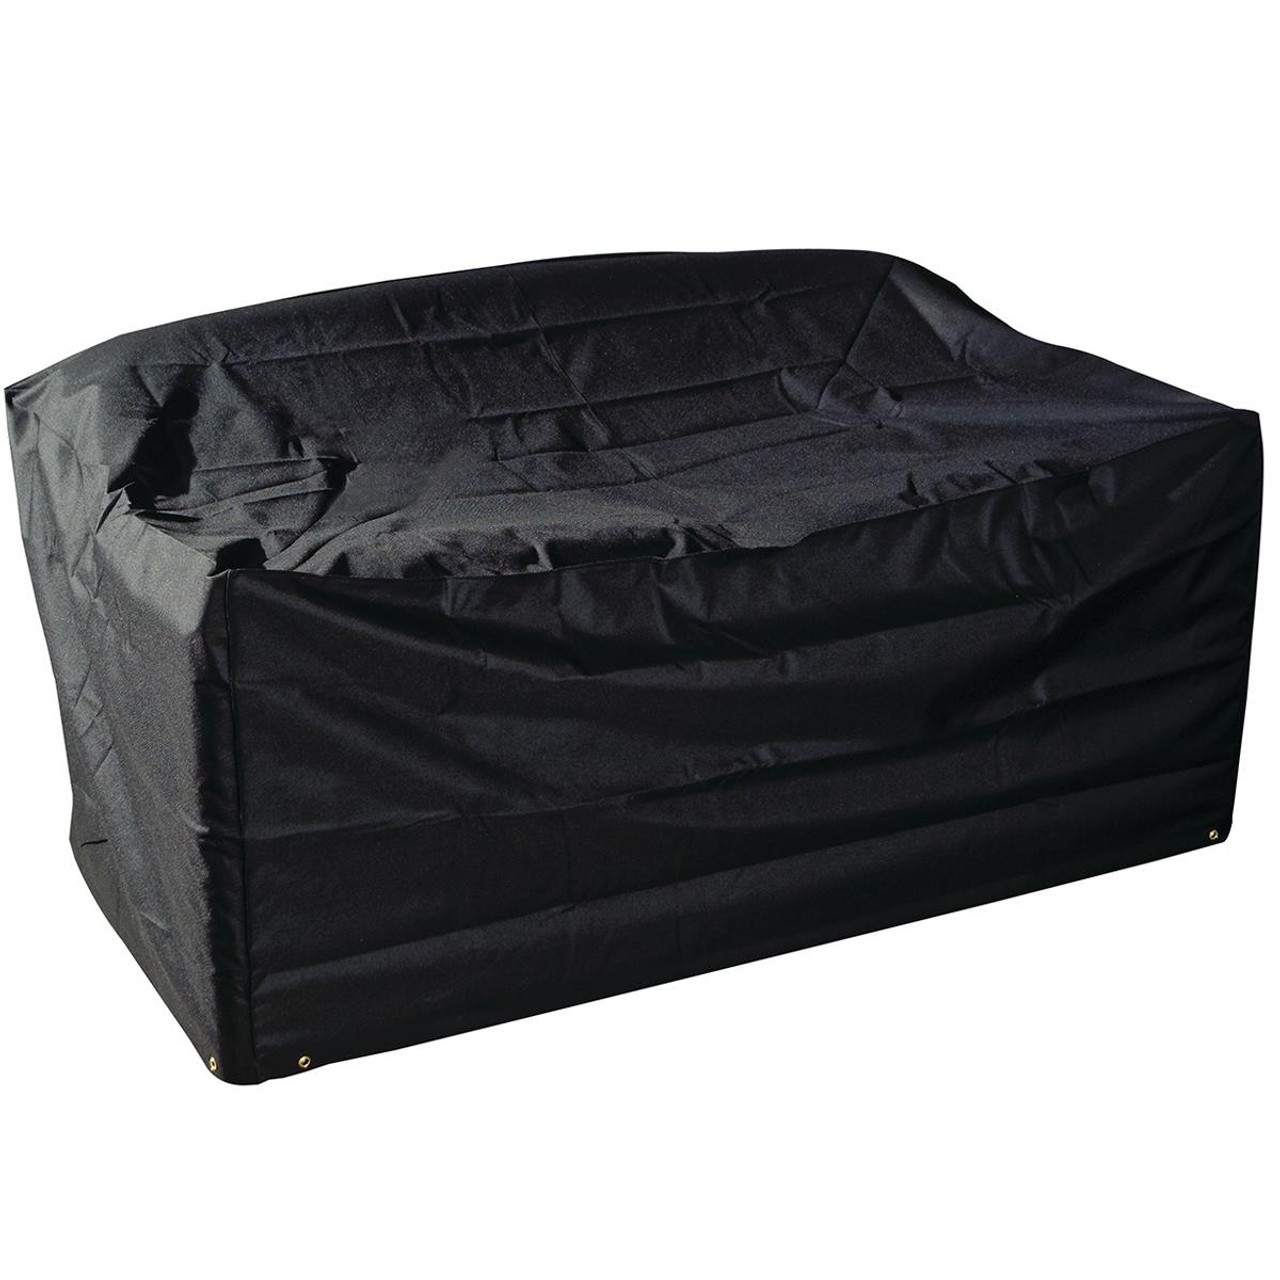 Bosmere Protector 6000 2-3 Seater Sofa Cover